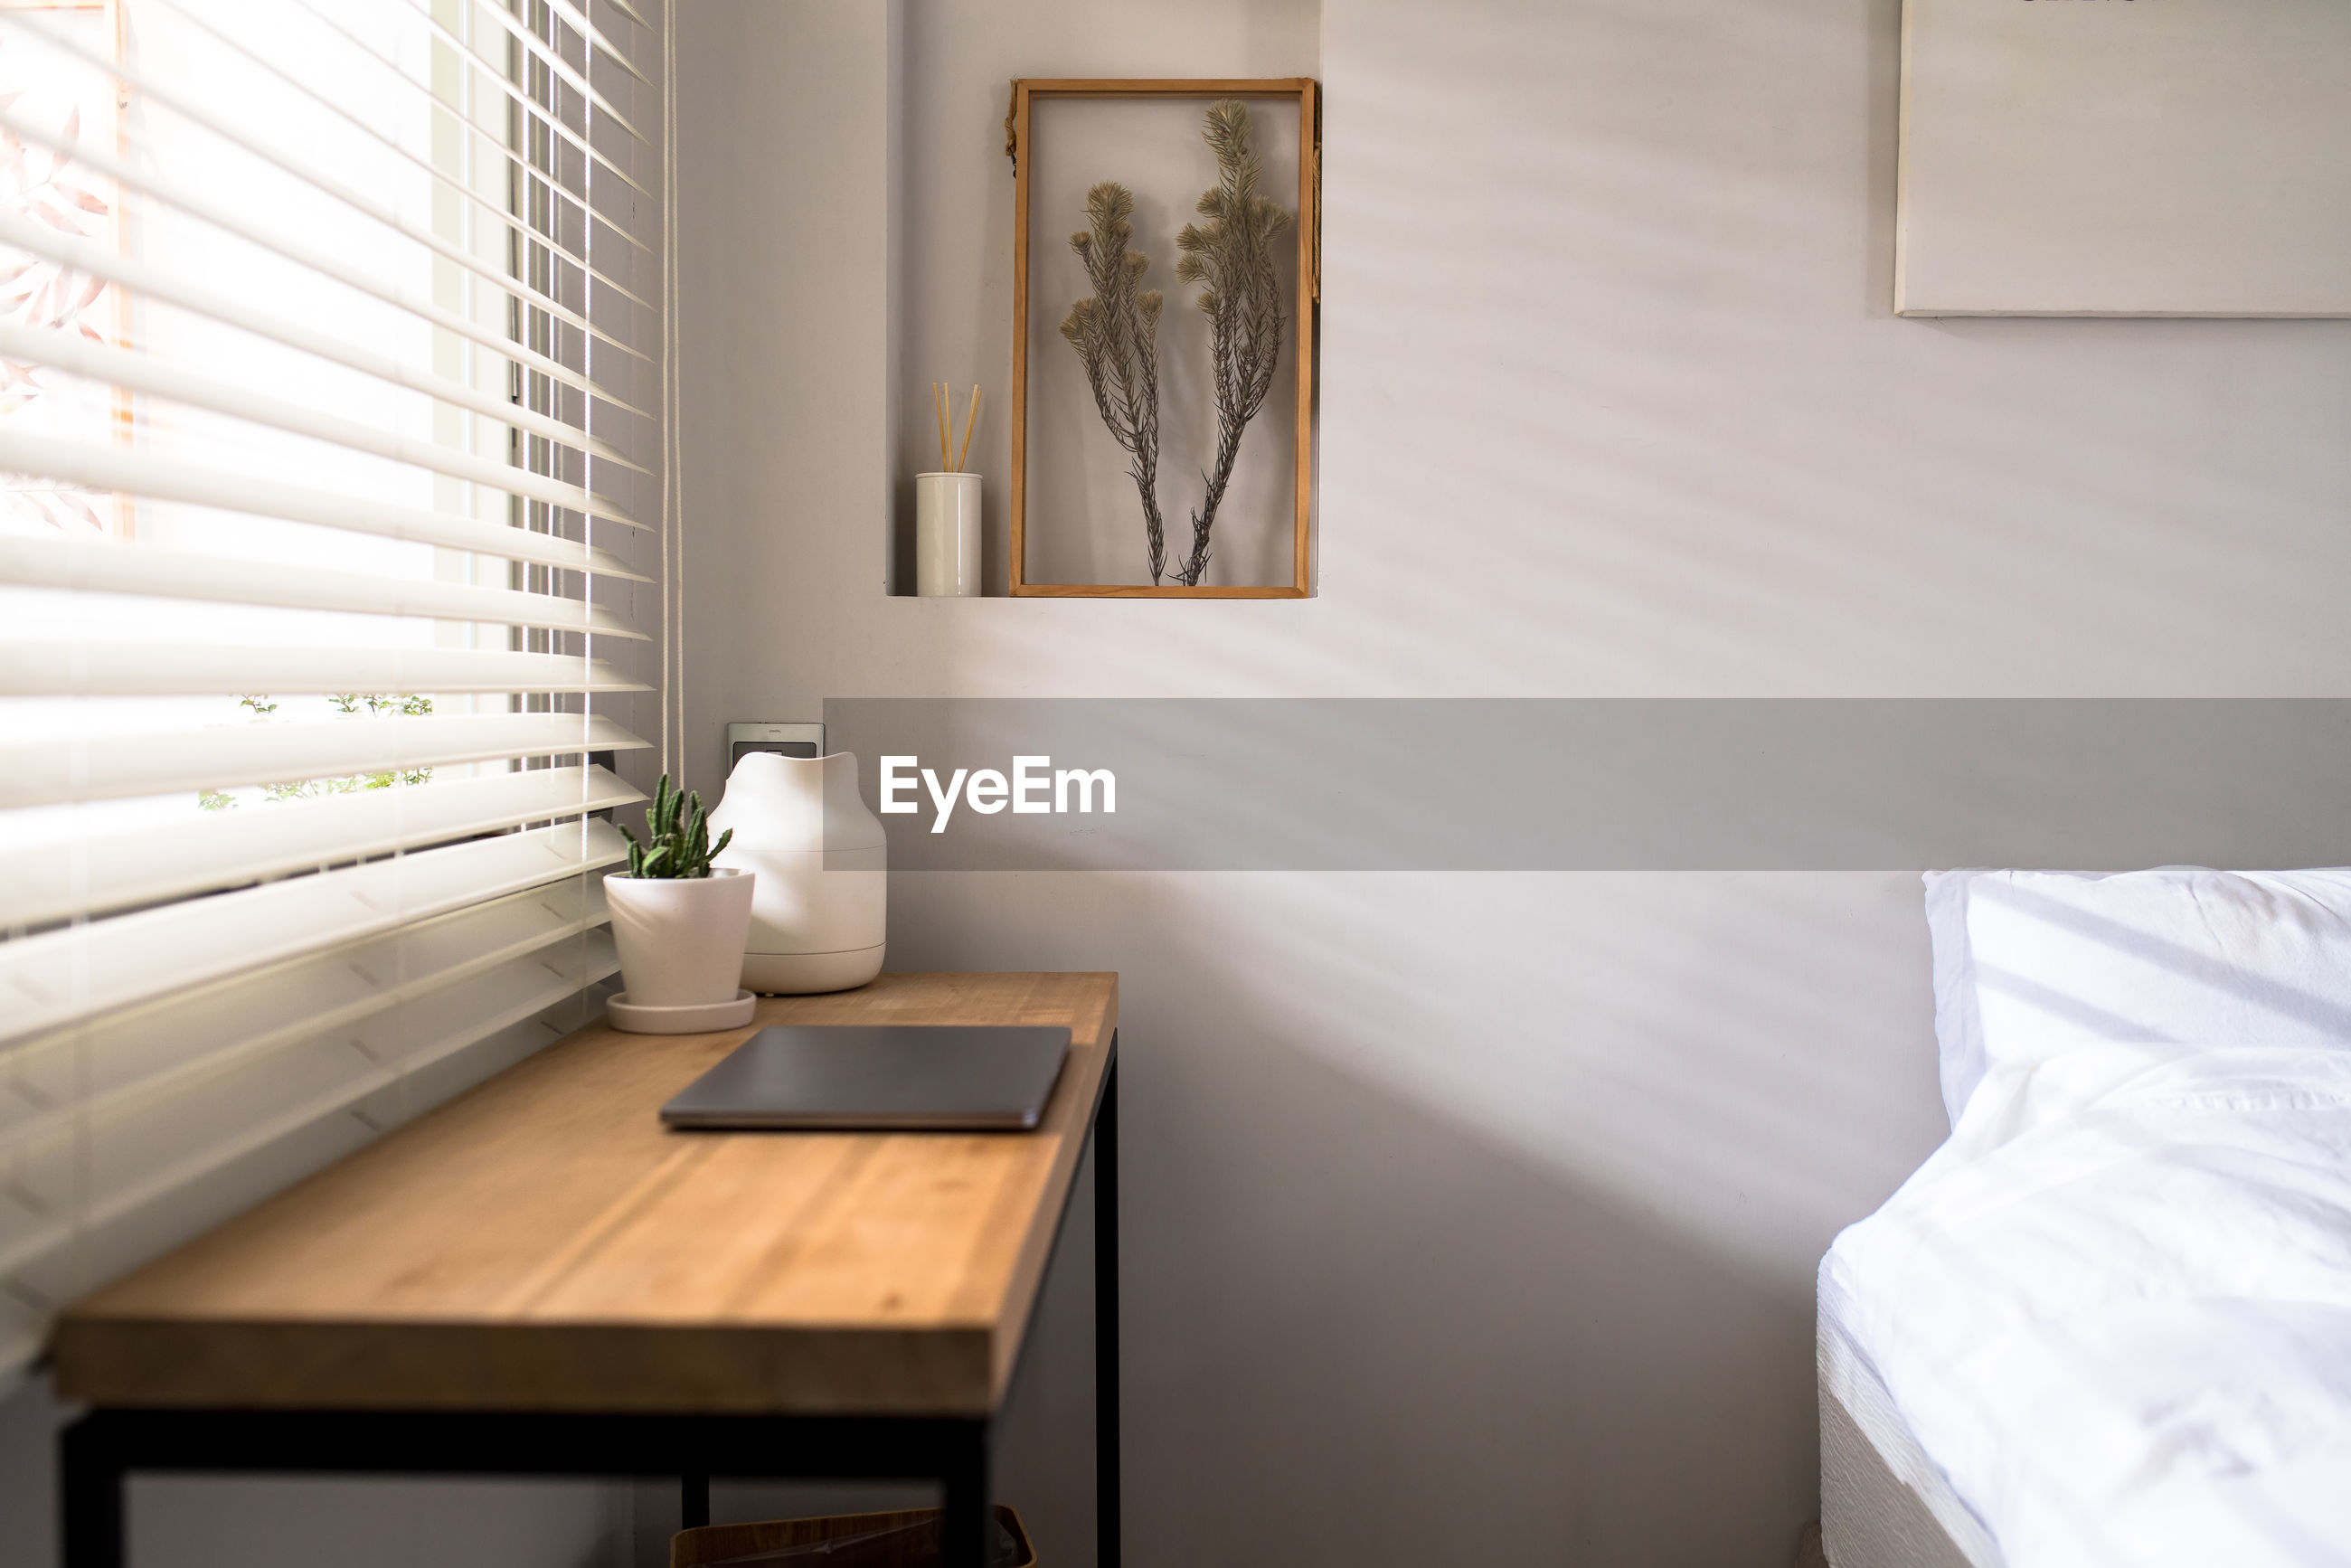 ELECTRIC LAMP ON TABLE BY WALL